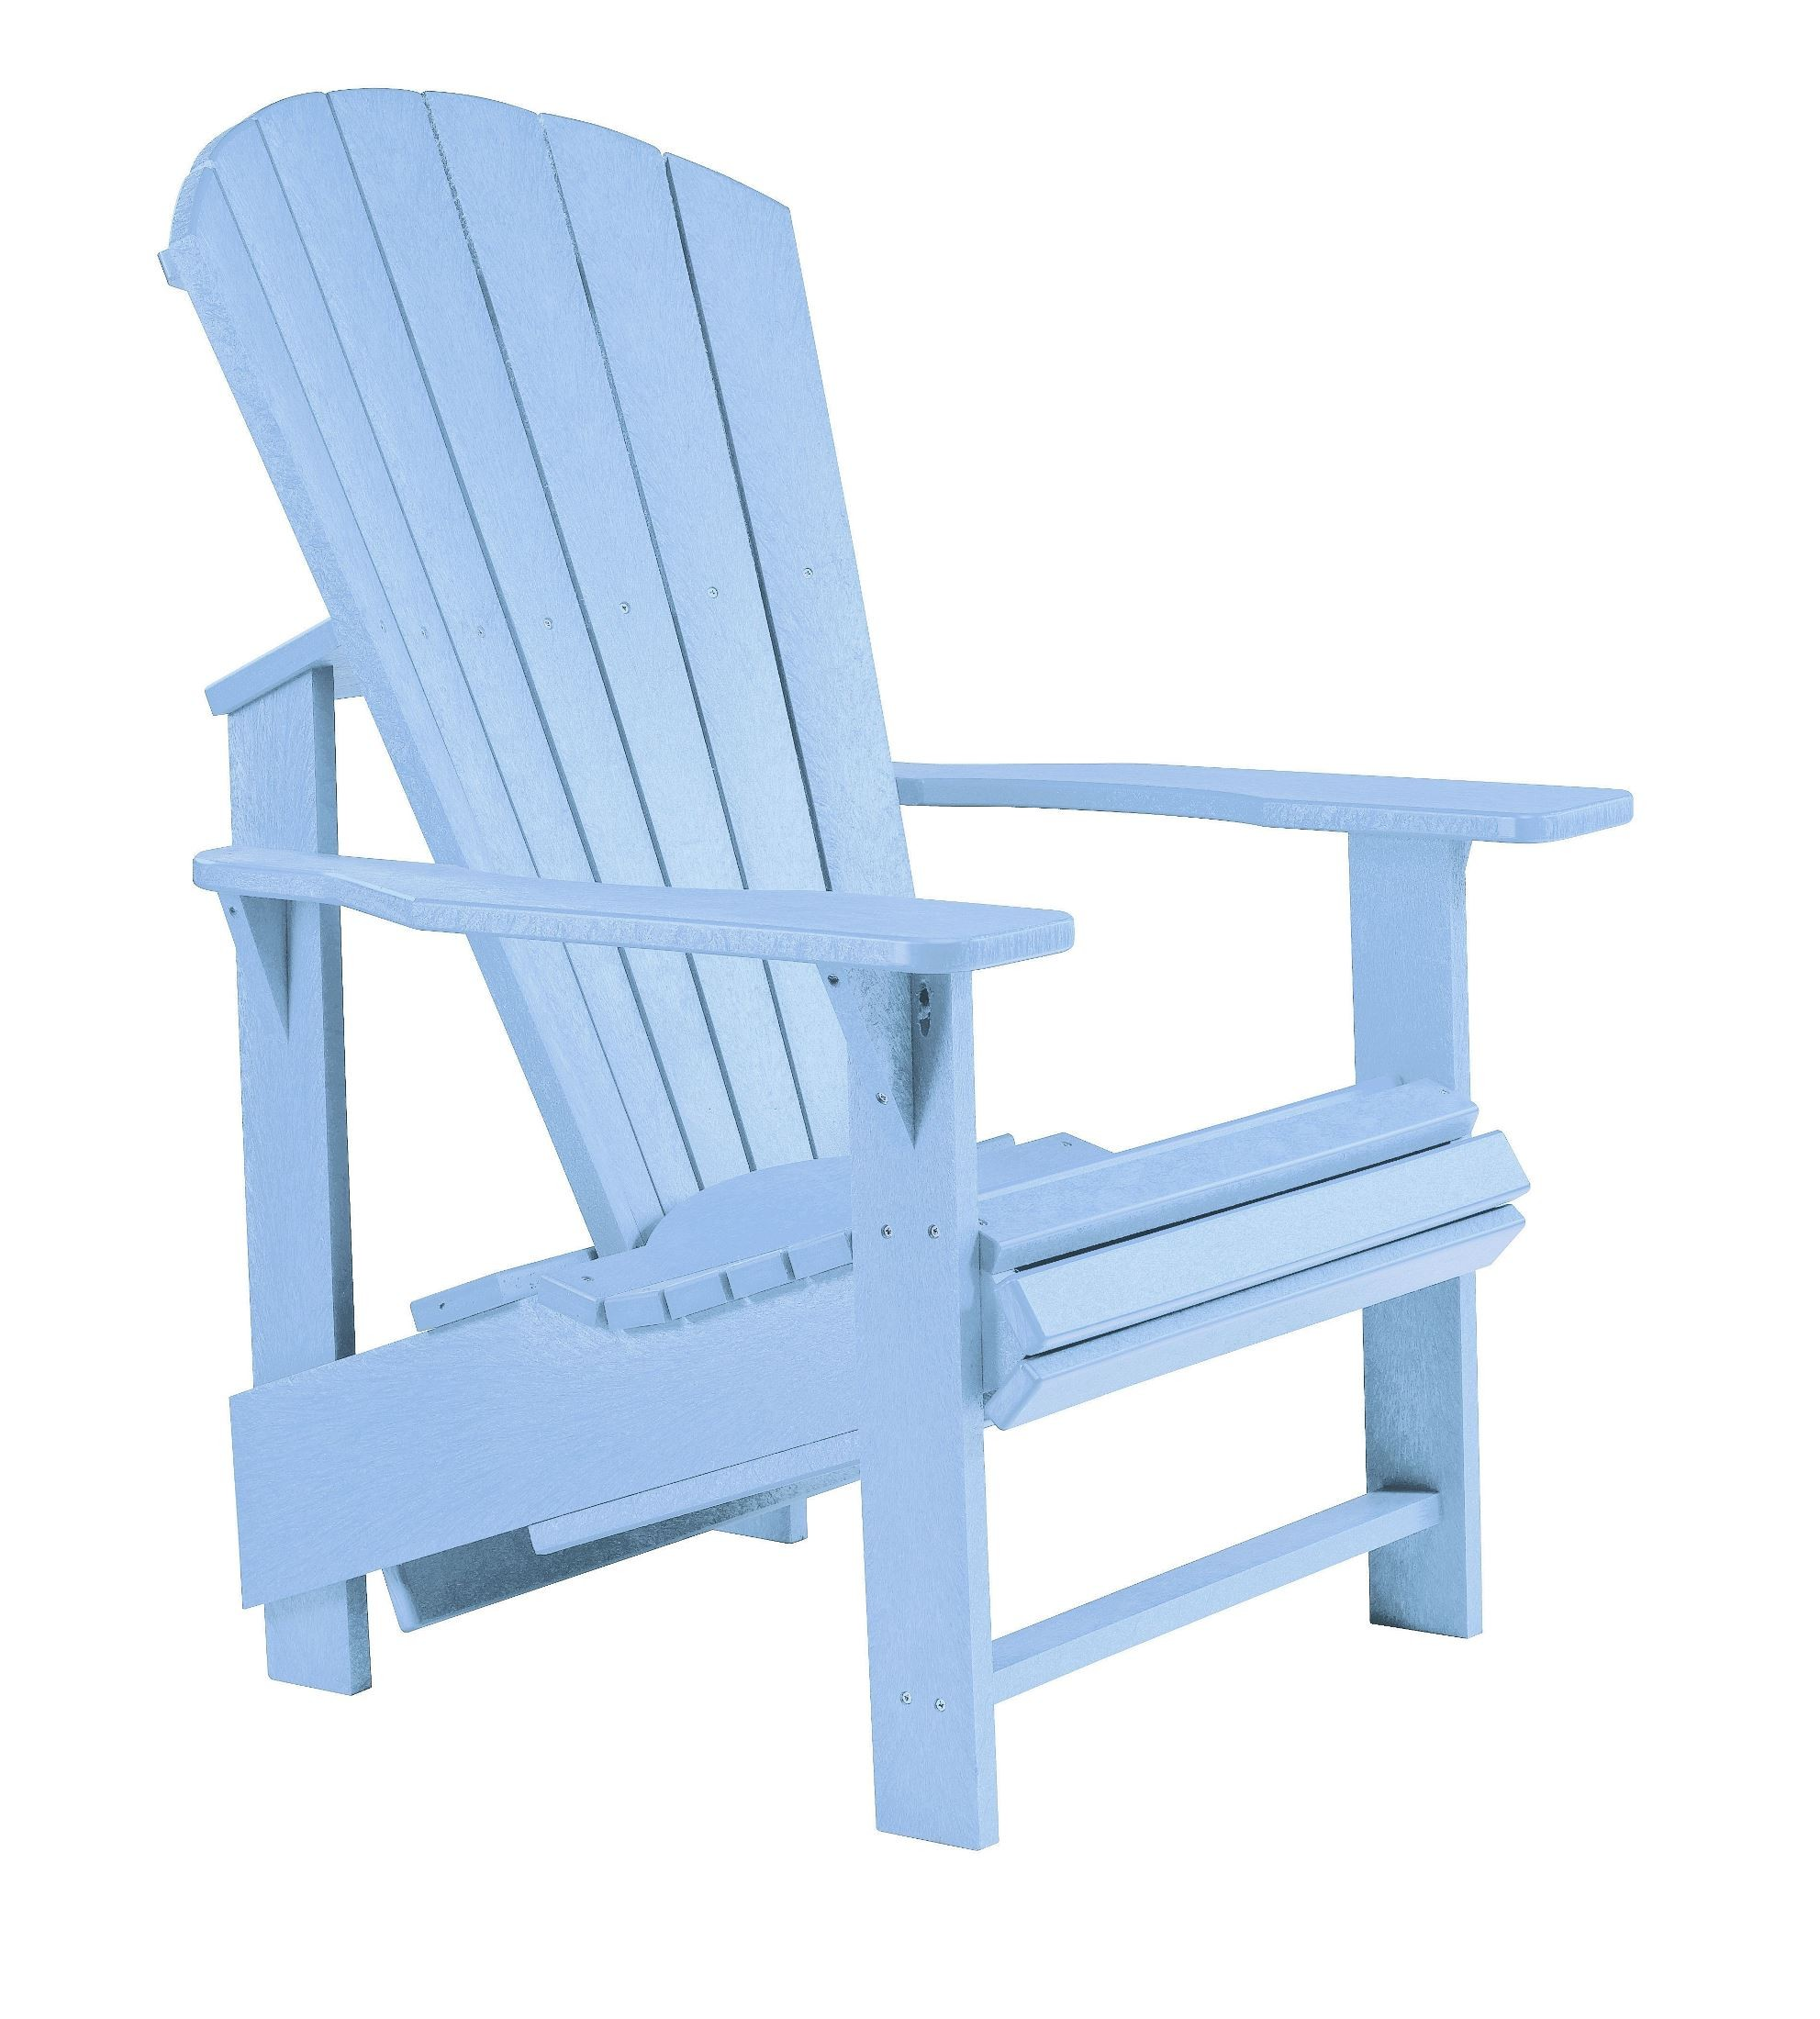 Blue Adirondack Chair Generations Sky Blue Upright Adirondack Chair From Cr